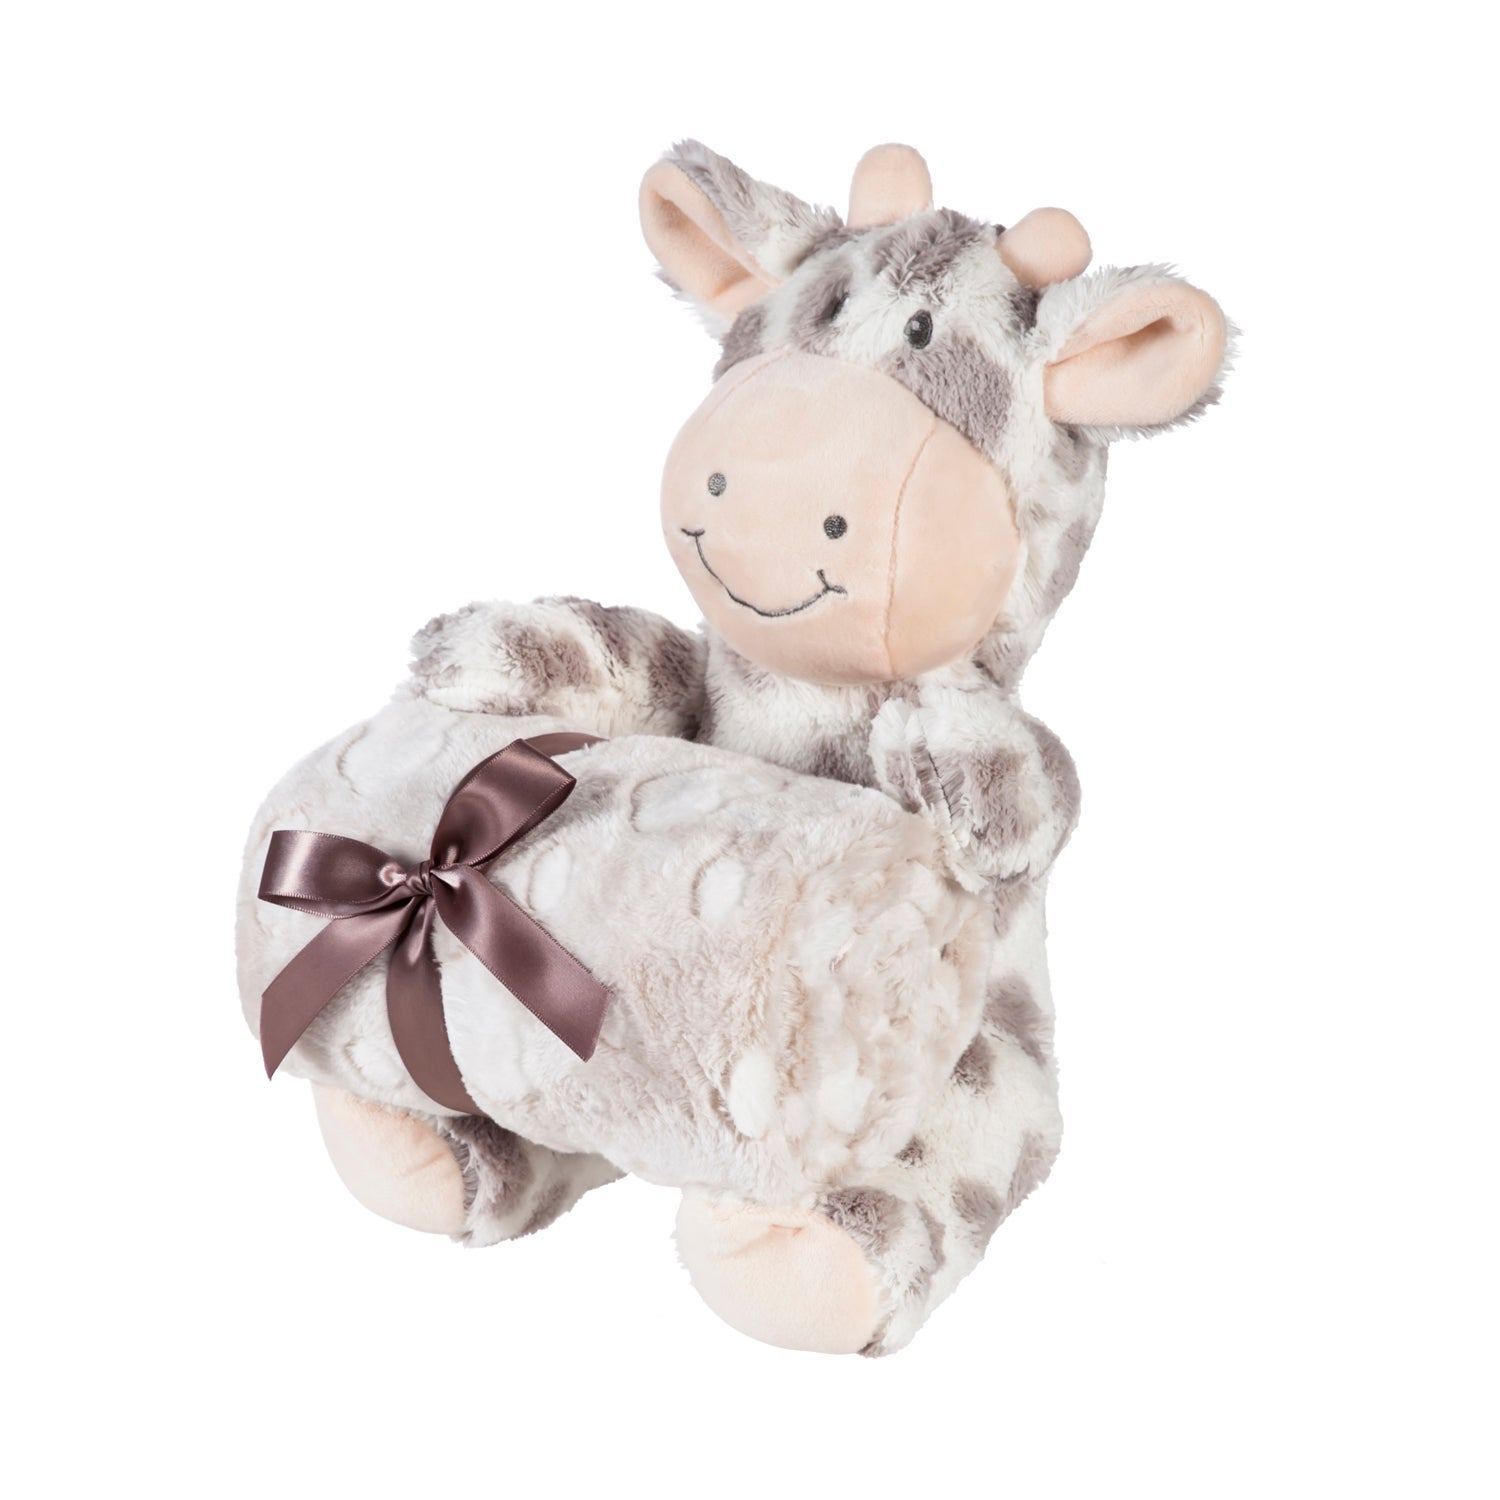 "Cuddly Giraffe 10"" Stuffed Animal w/ Blanket Gift Set, Gray"